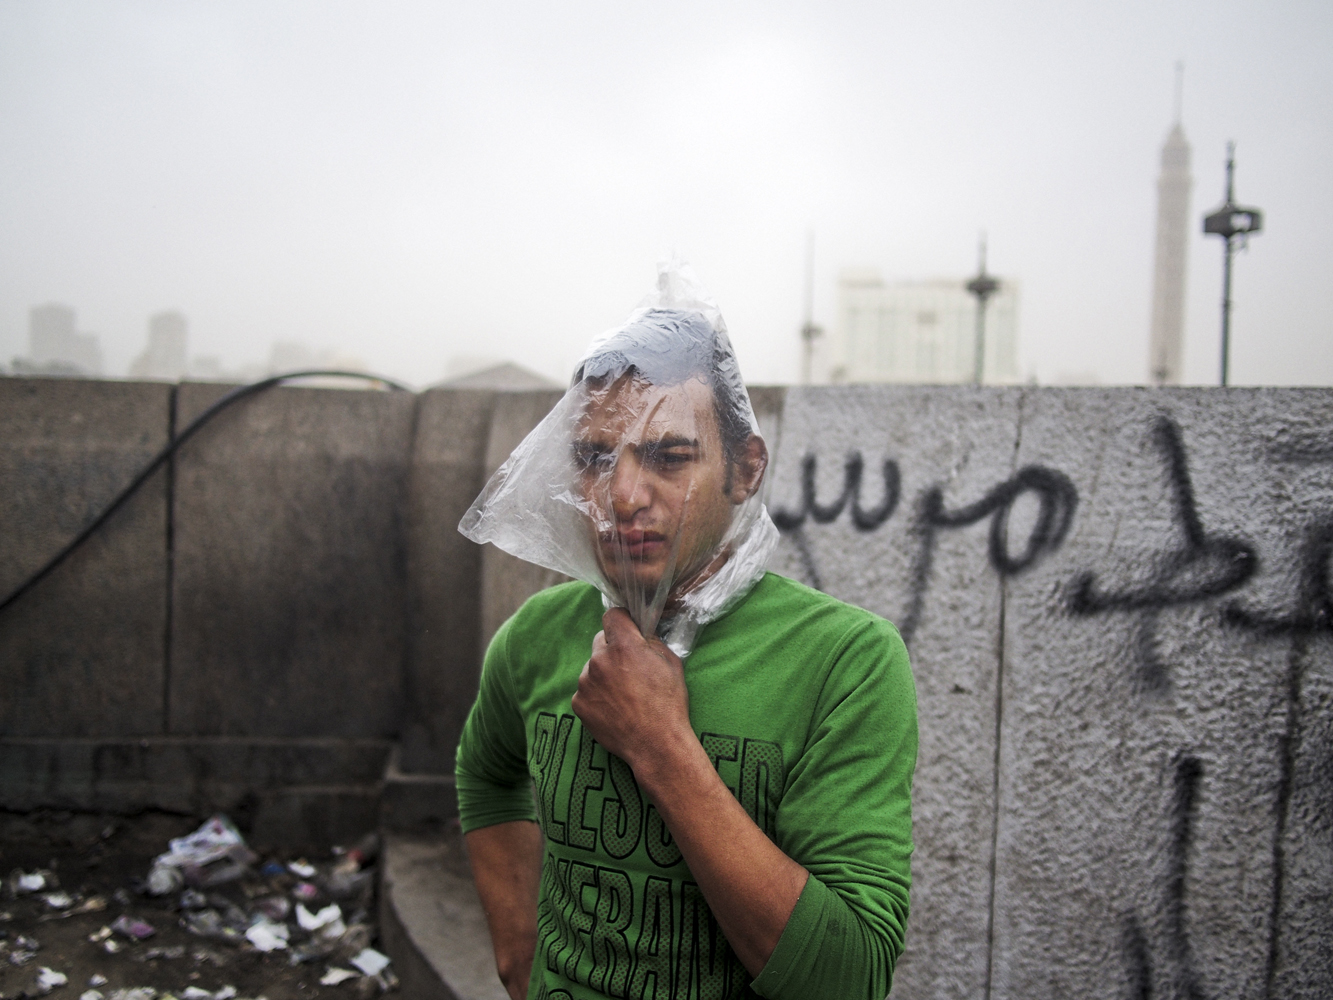 A protestor covers his head with a plastic bag as a makeshift gas mask during clashes near Tahrir Square in Cairo.  January 28, 2013.